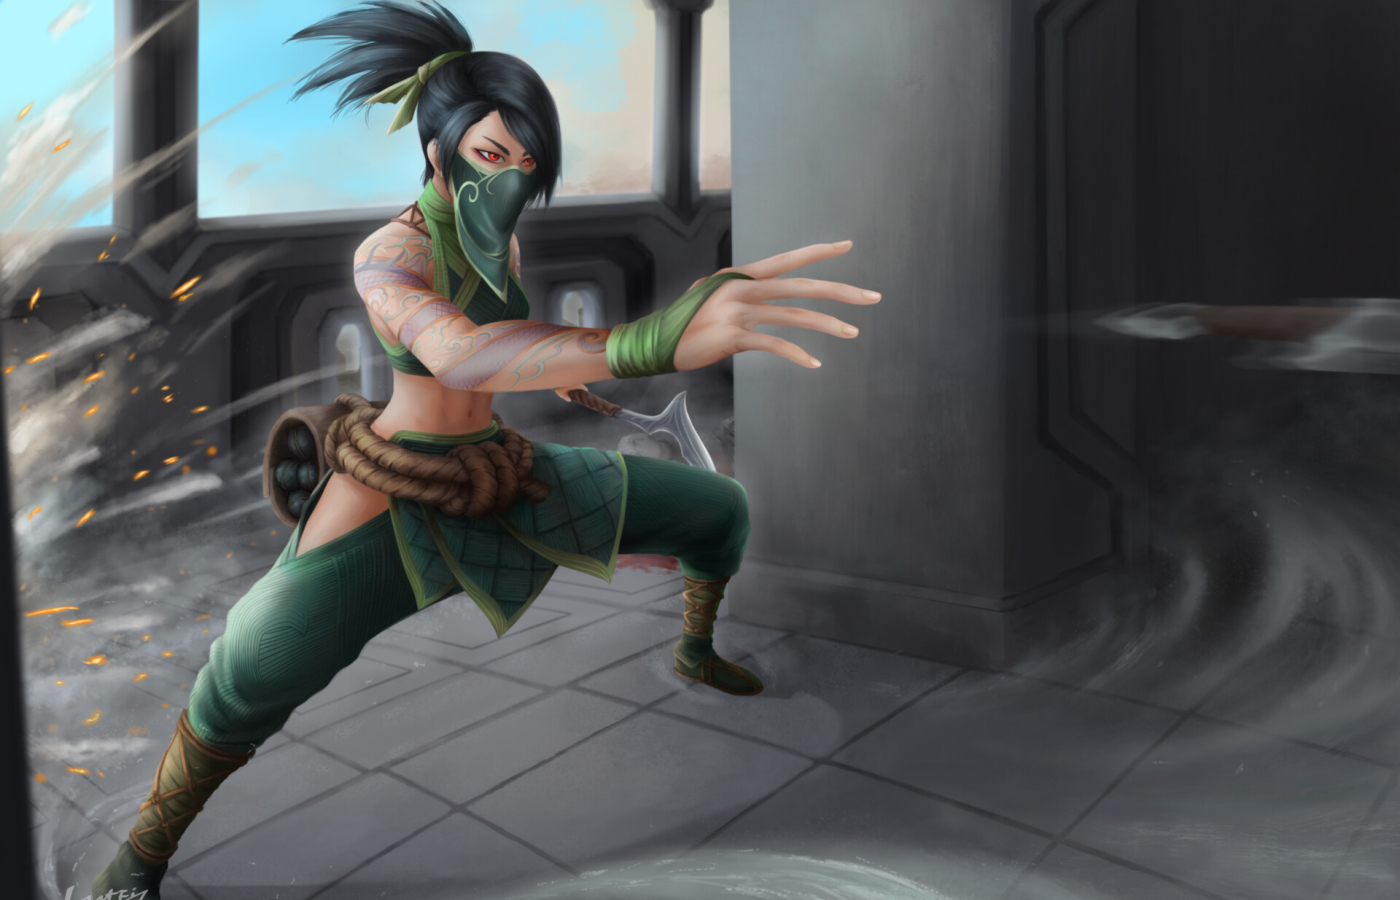 Akali from League Of Legends Wallpaper in 1400x900 Resolution